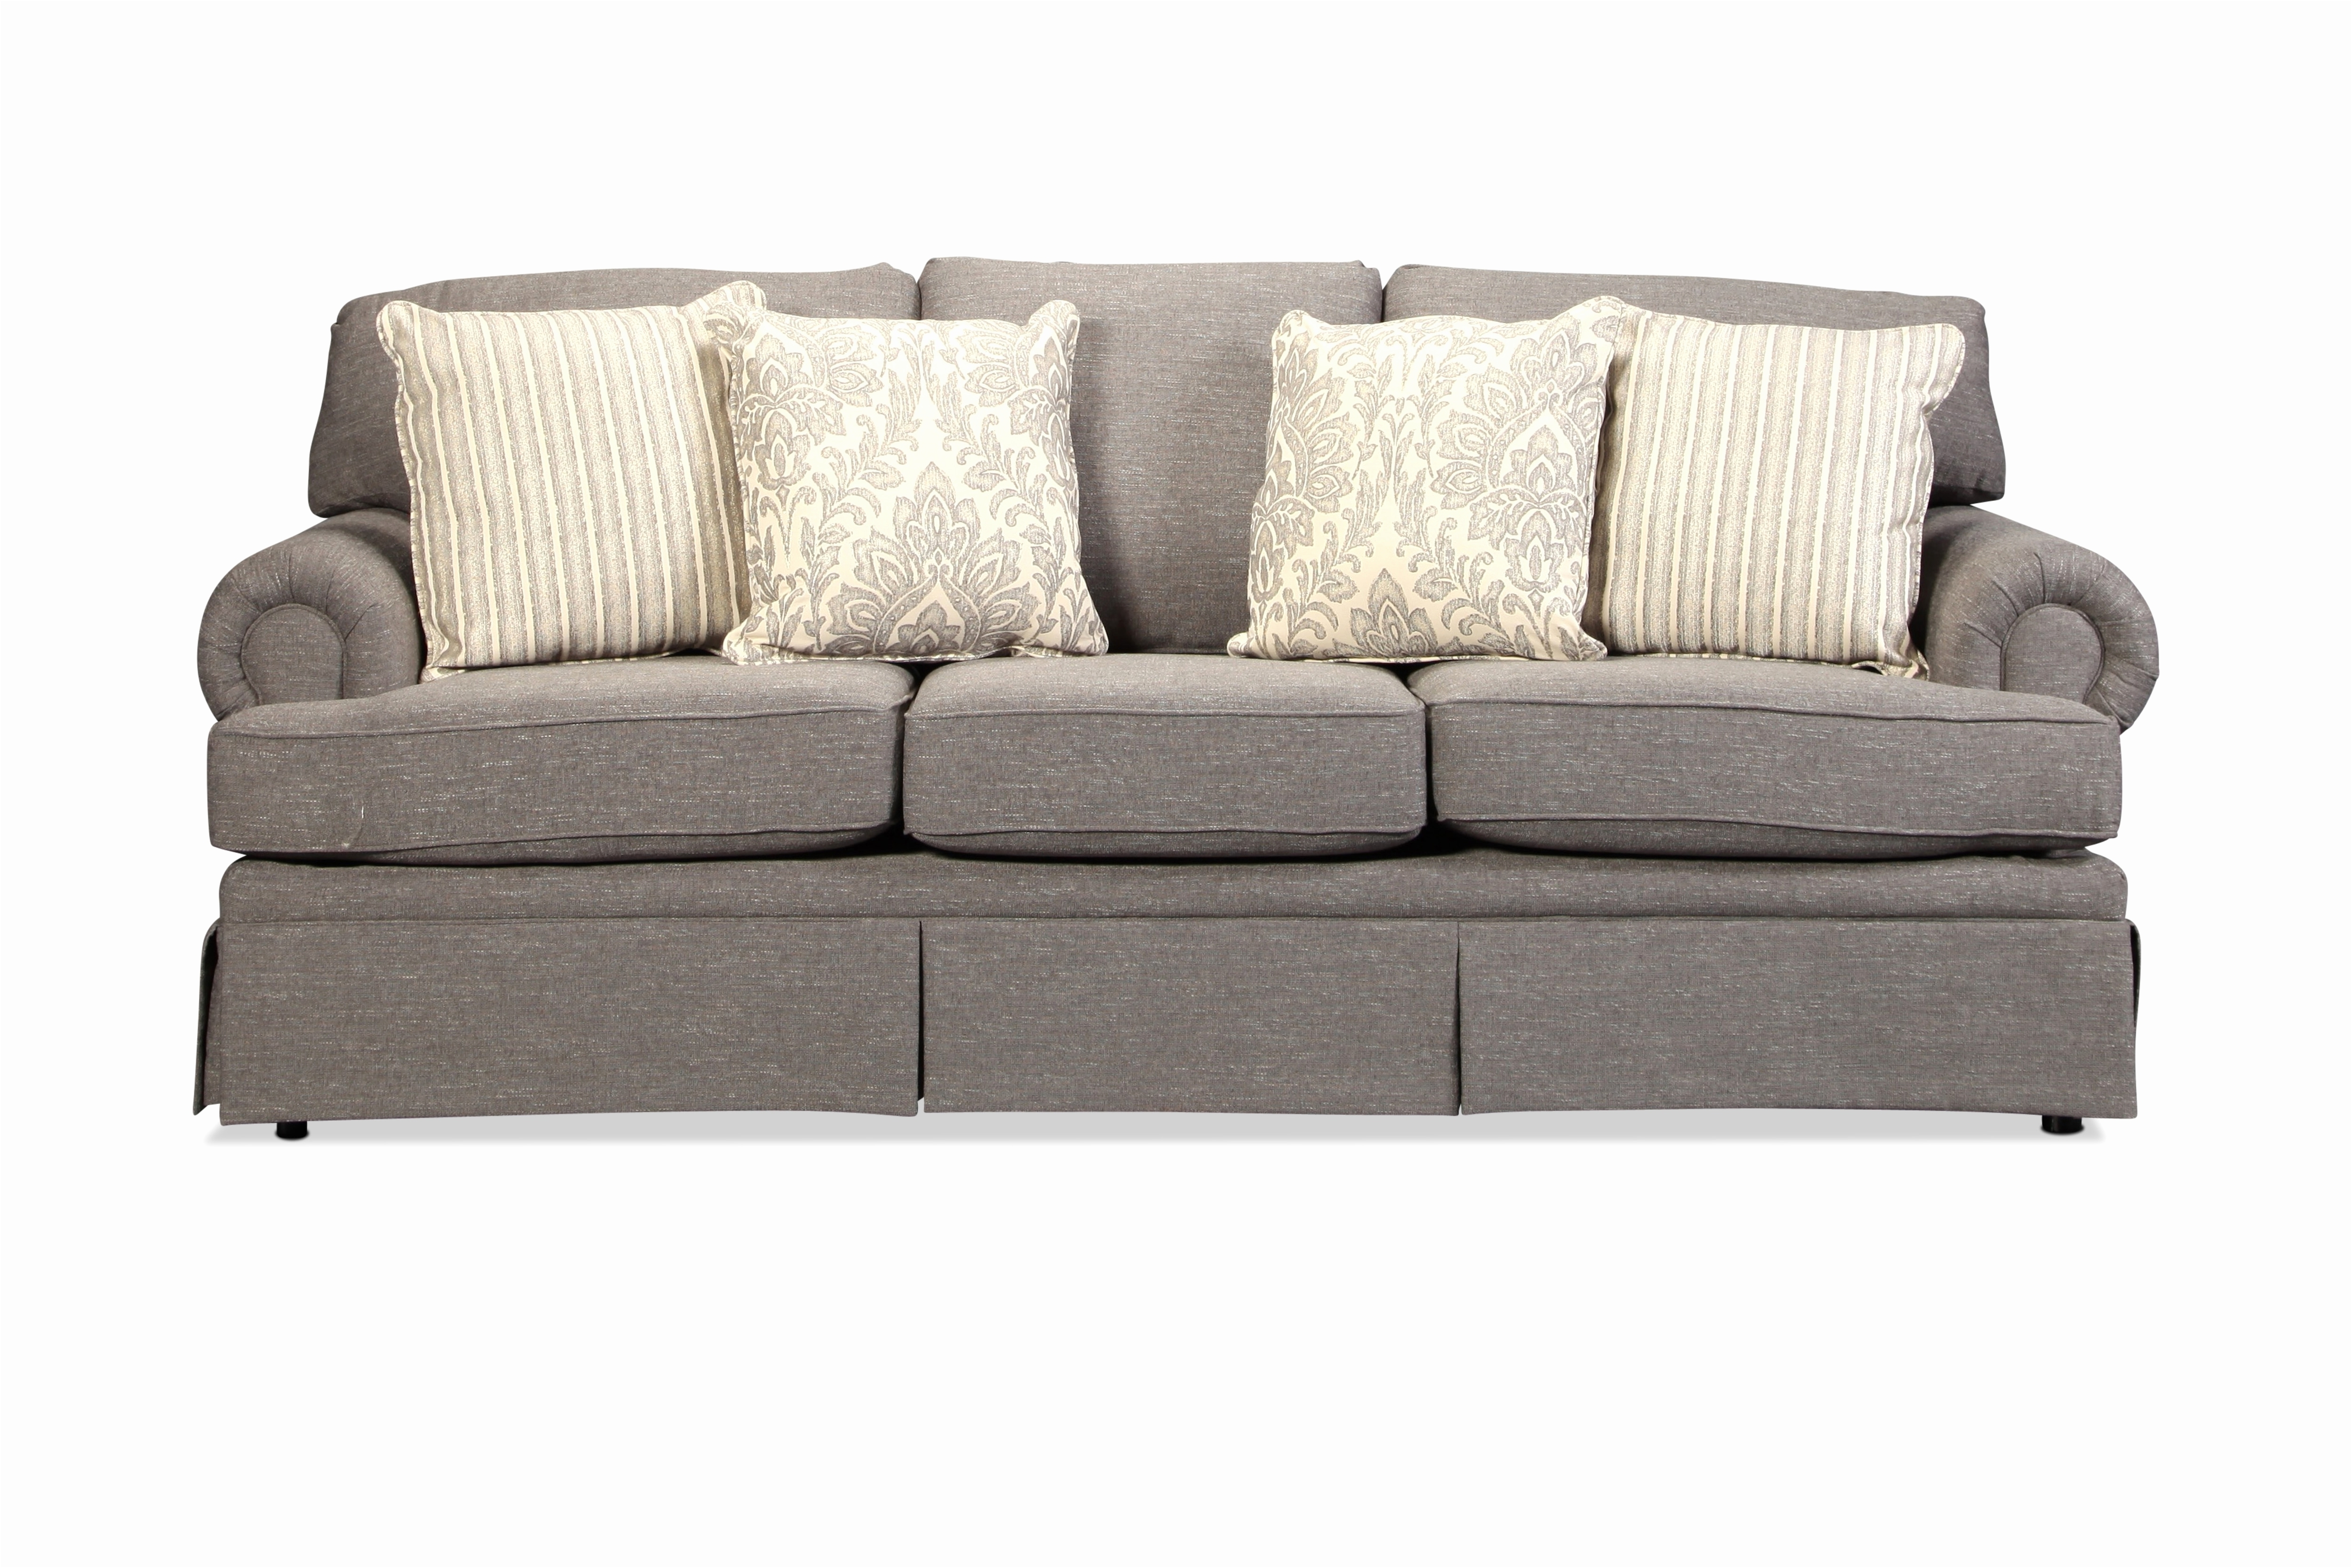 Cindy Crawford Marco Sofa – Intuisiblog Intended For Most Current Cindy Crawford Sofas (View 15 of 15)